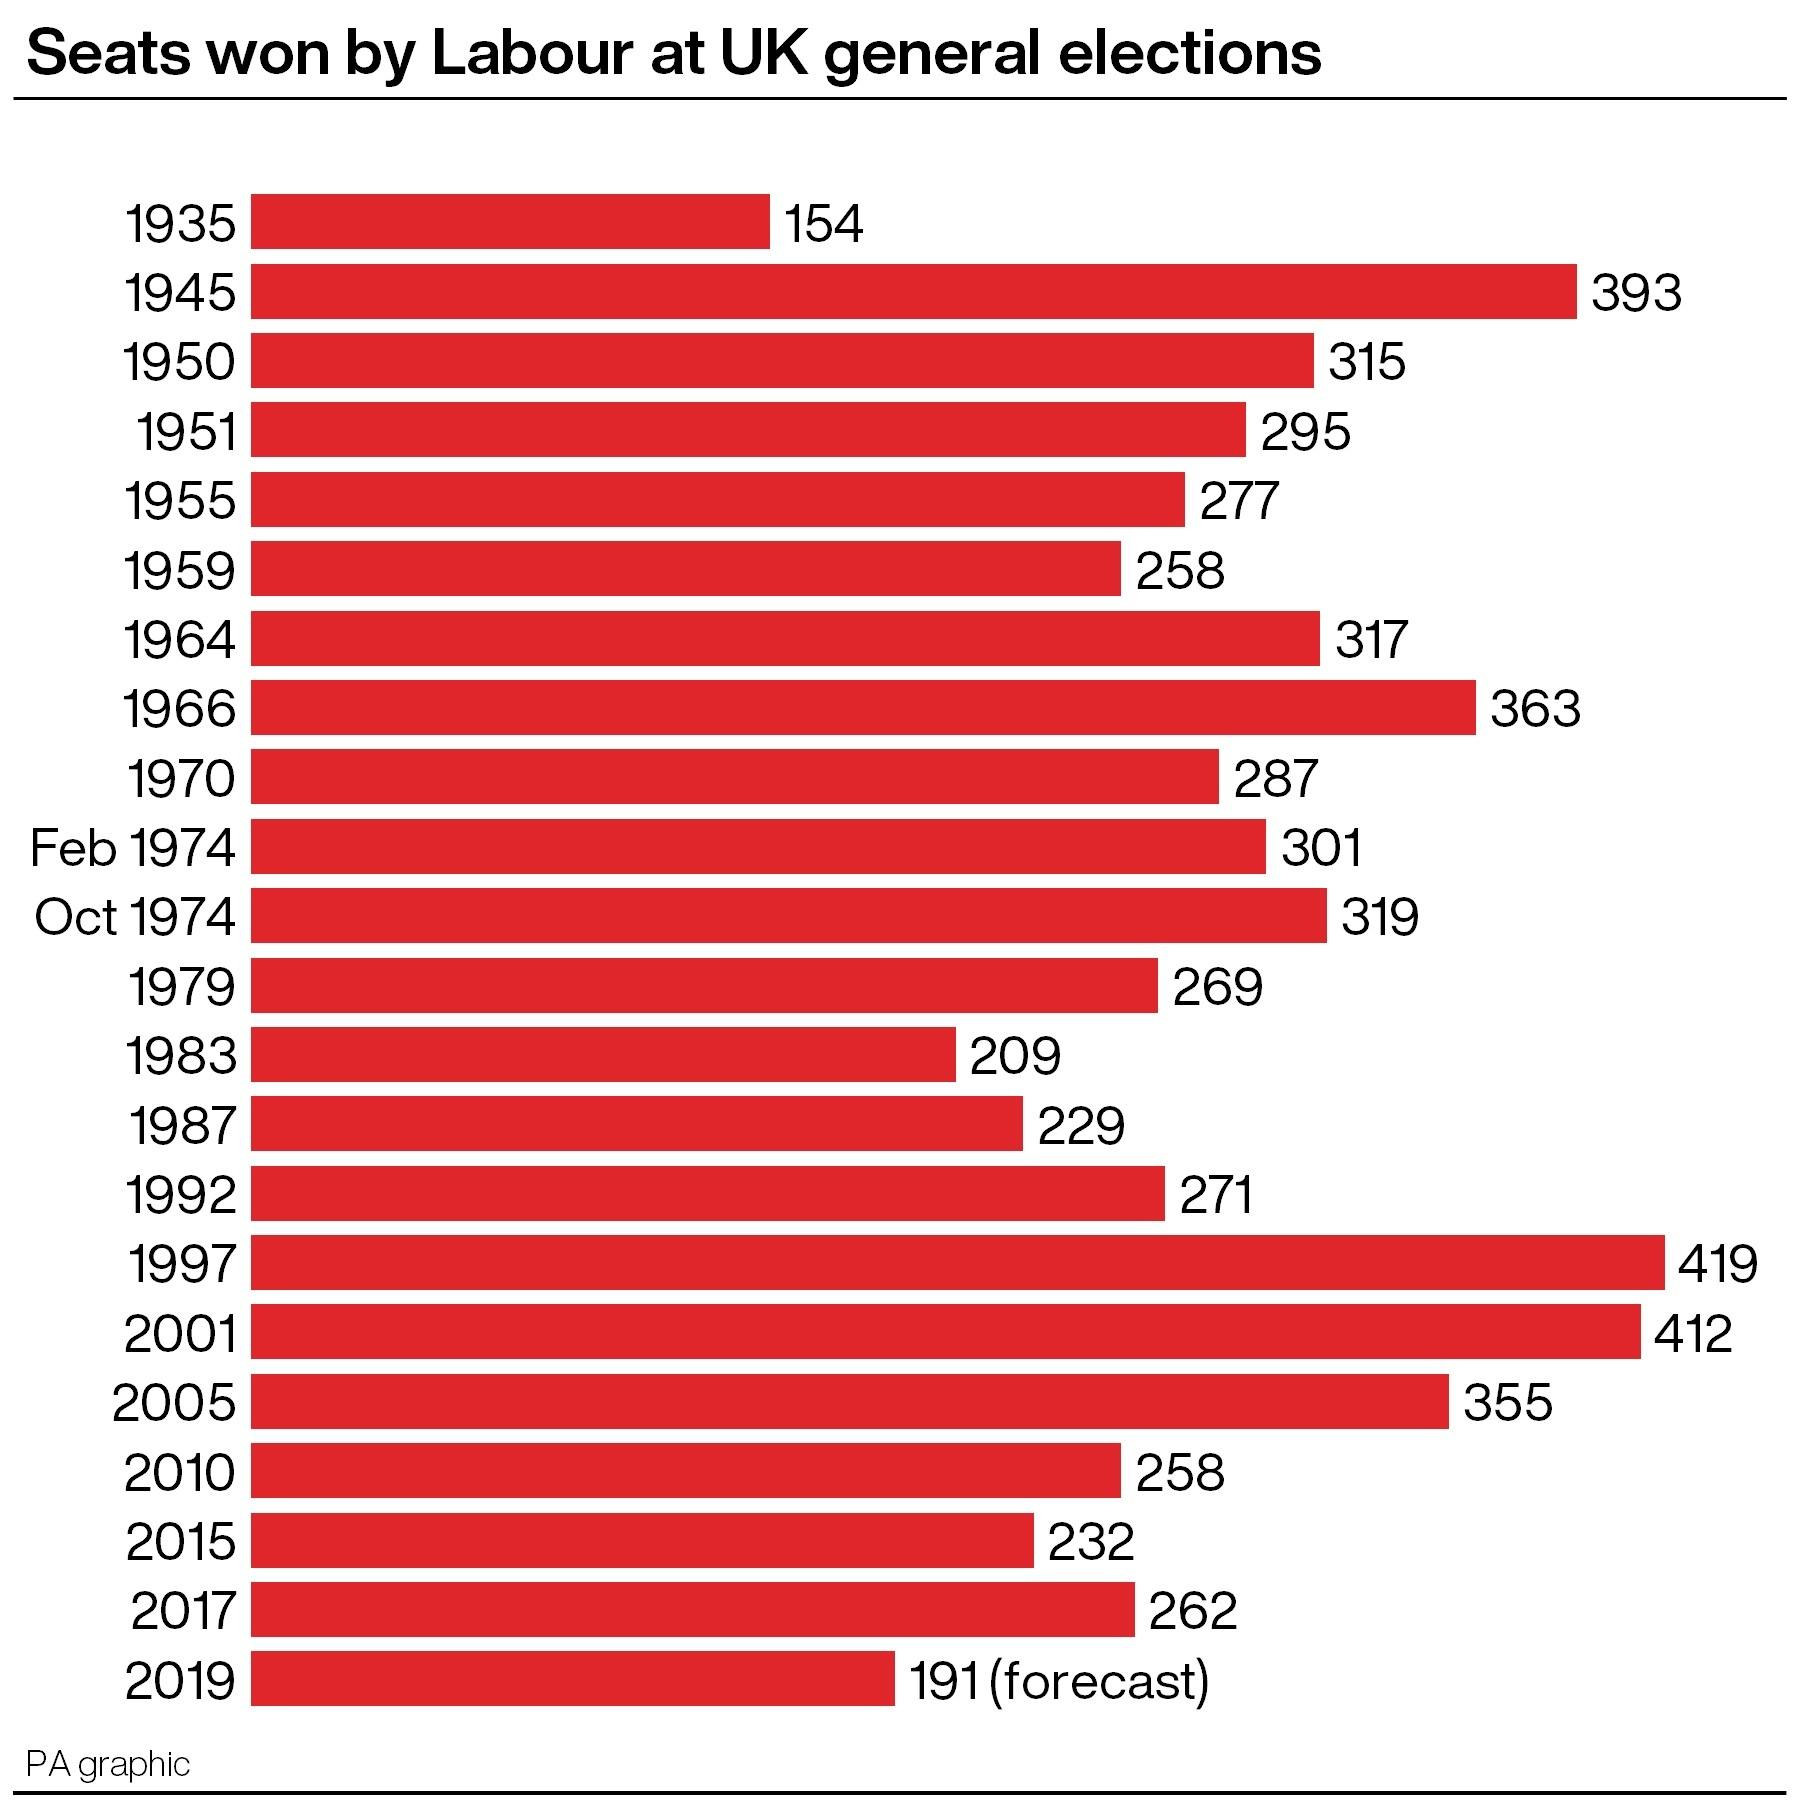 Seats won by Labour at UK general elections. Infographic from PA Graphics.